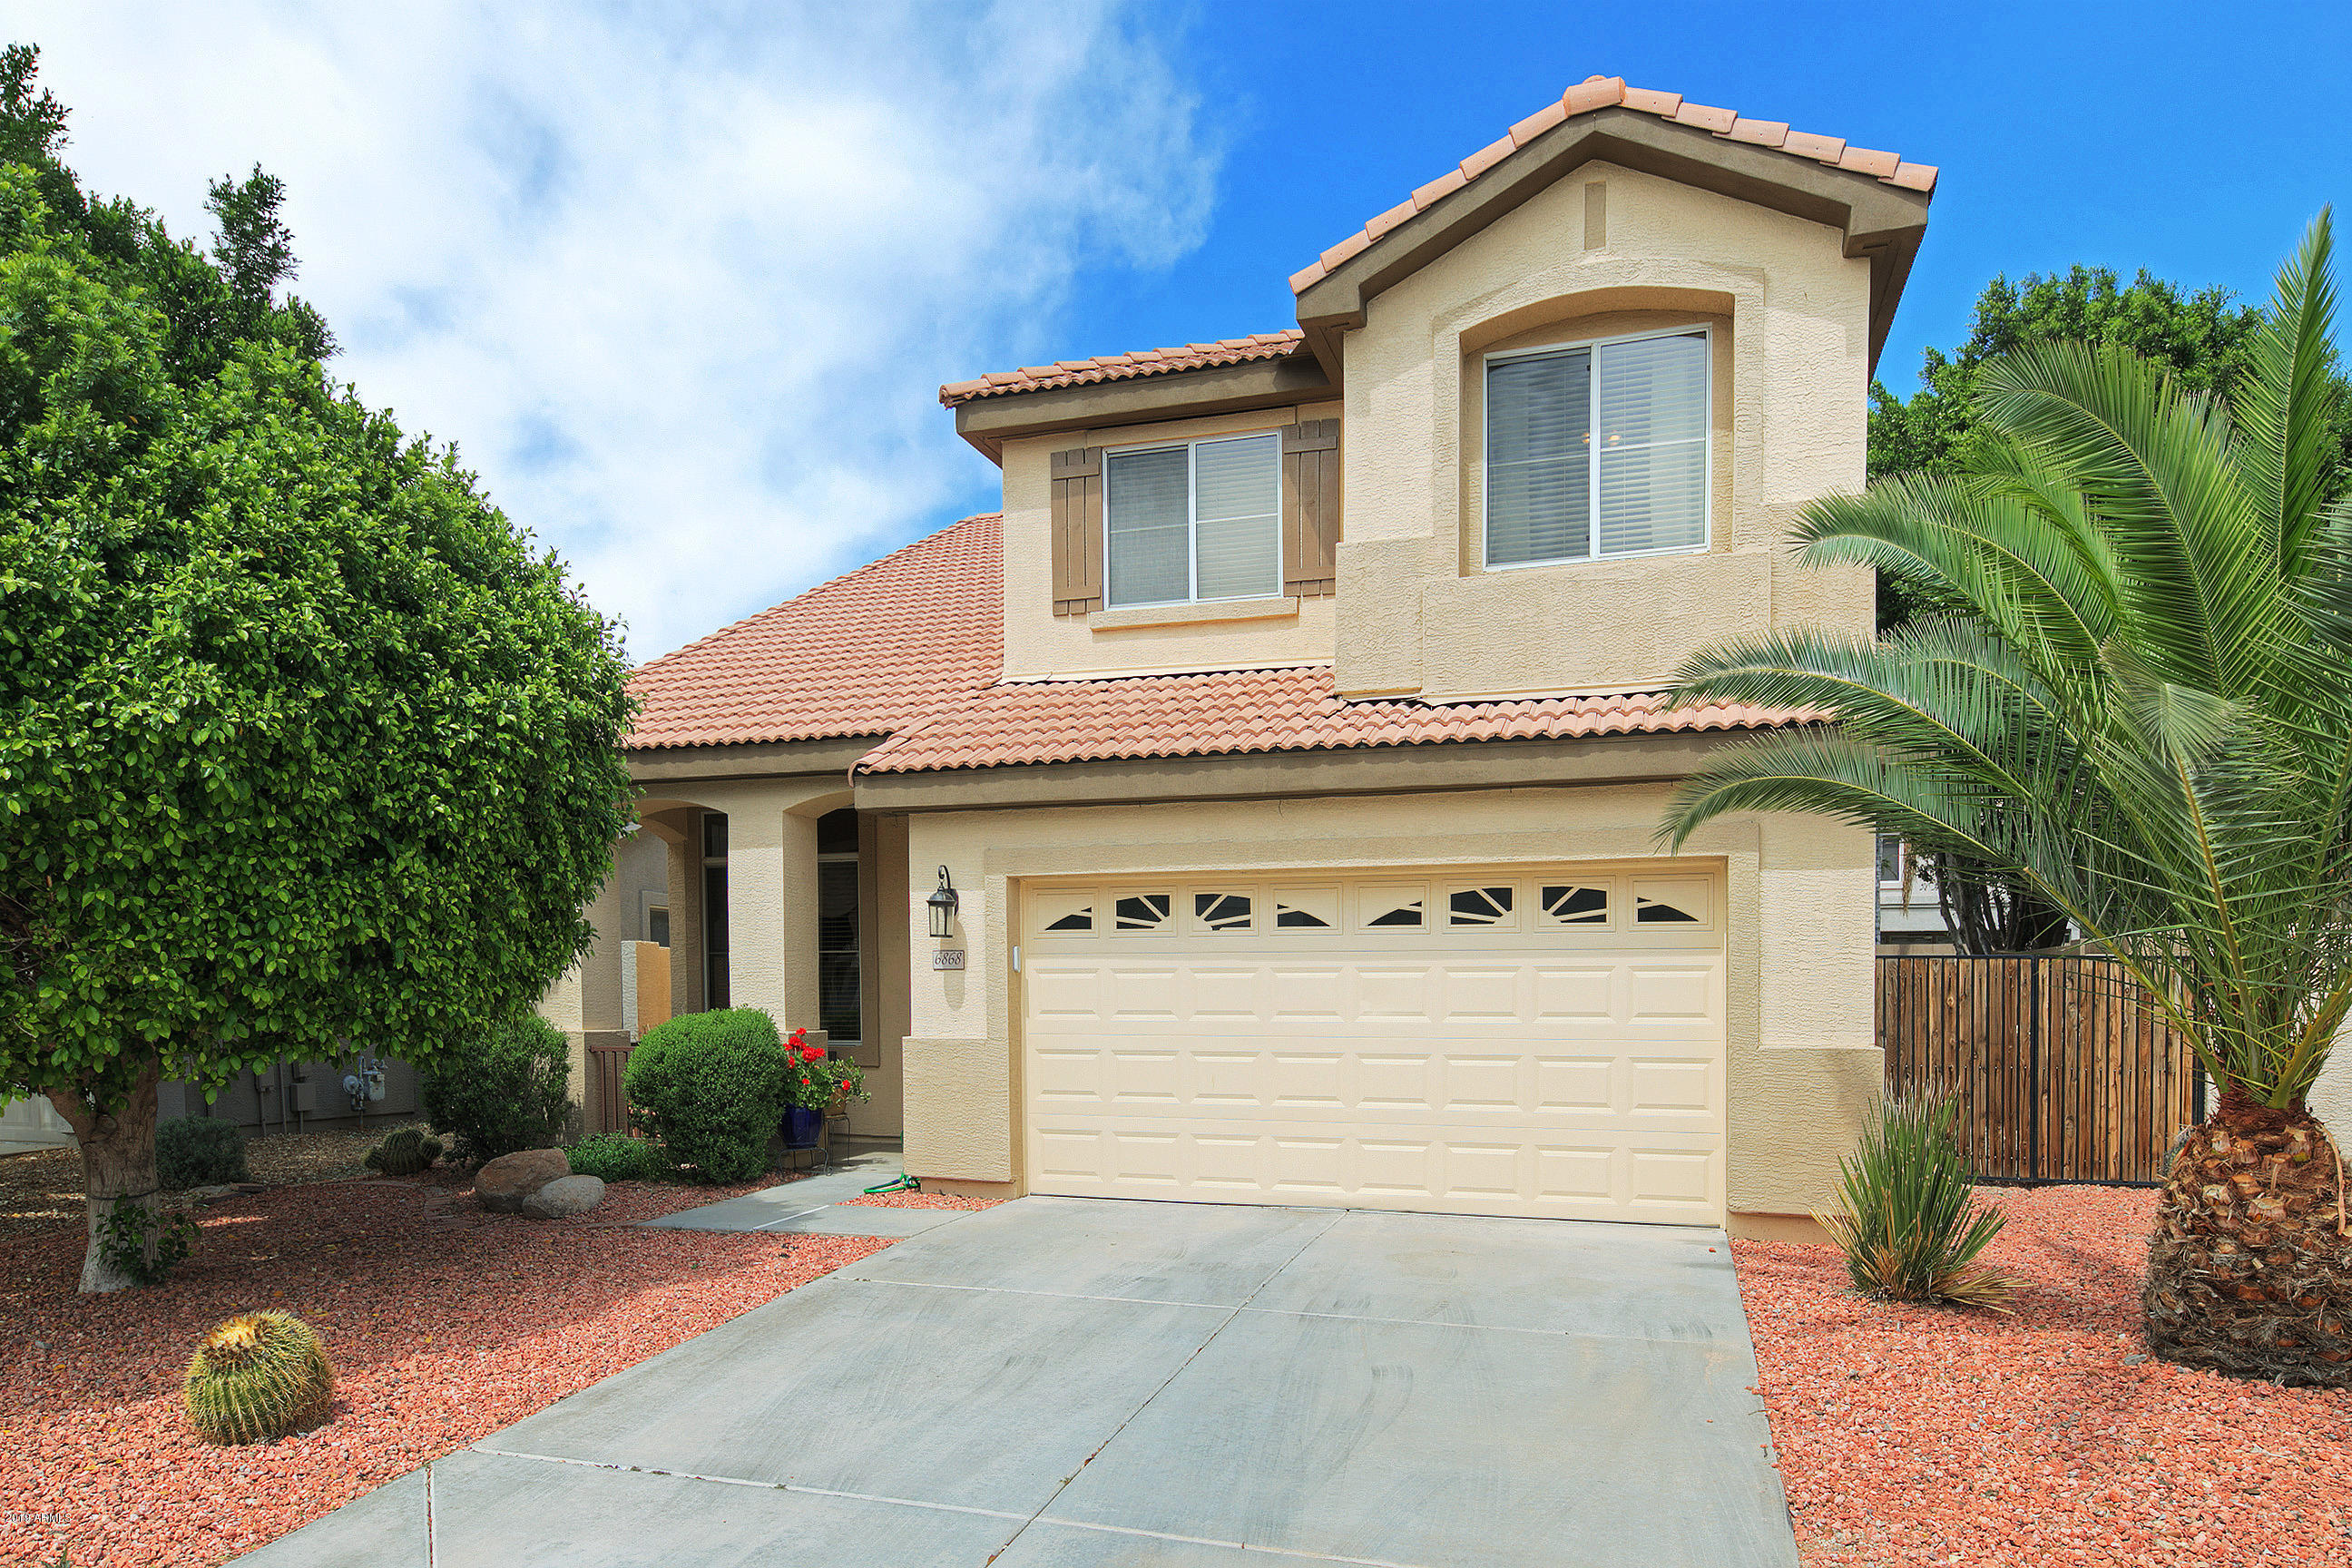 Photo of 6868 W IRMA Lane, Glendale, AZ 85308